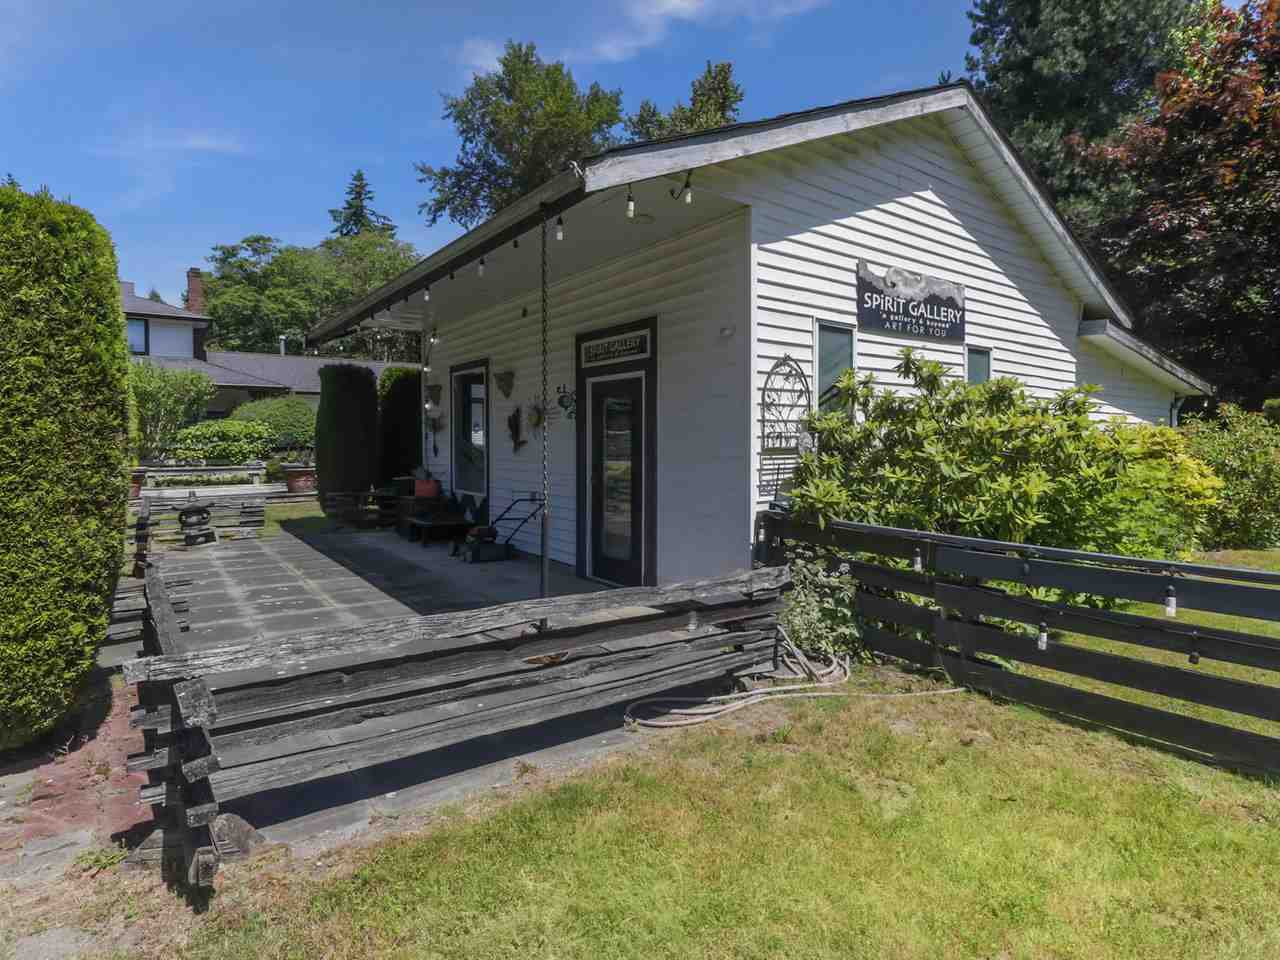 Photo 19: Photos: 13957 32 Avenue in Surrey: Elgin Chantrell House for sale (South Surrey White Rock)  : MLS®# R2466206